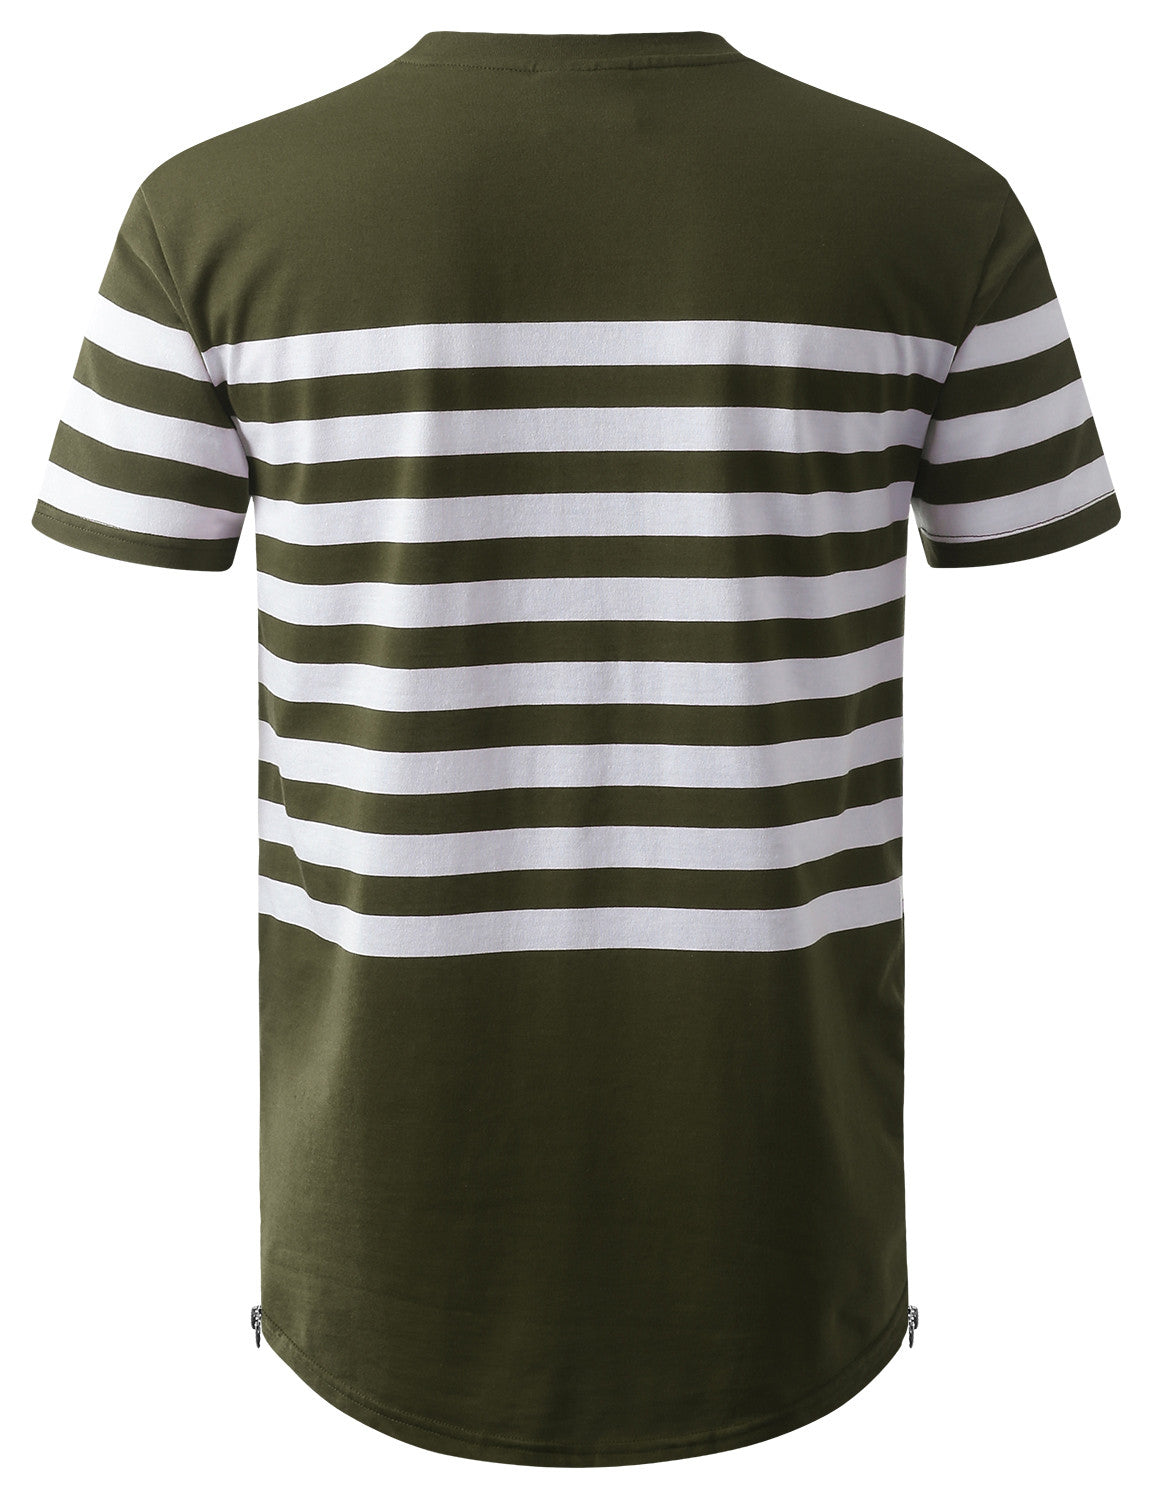 OLIVE Stripe Longline Tshirt with Side Zippers - URBANCREWS